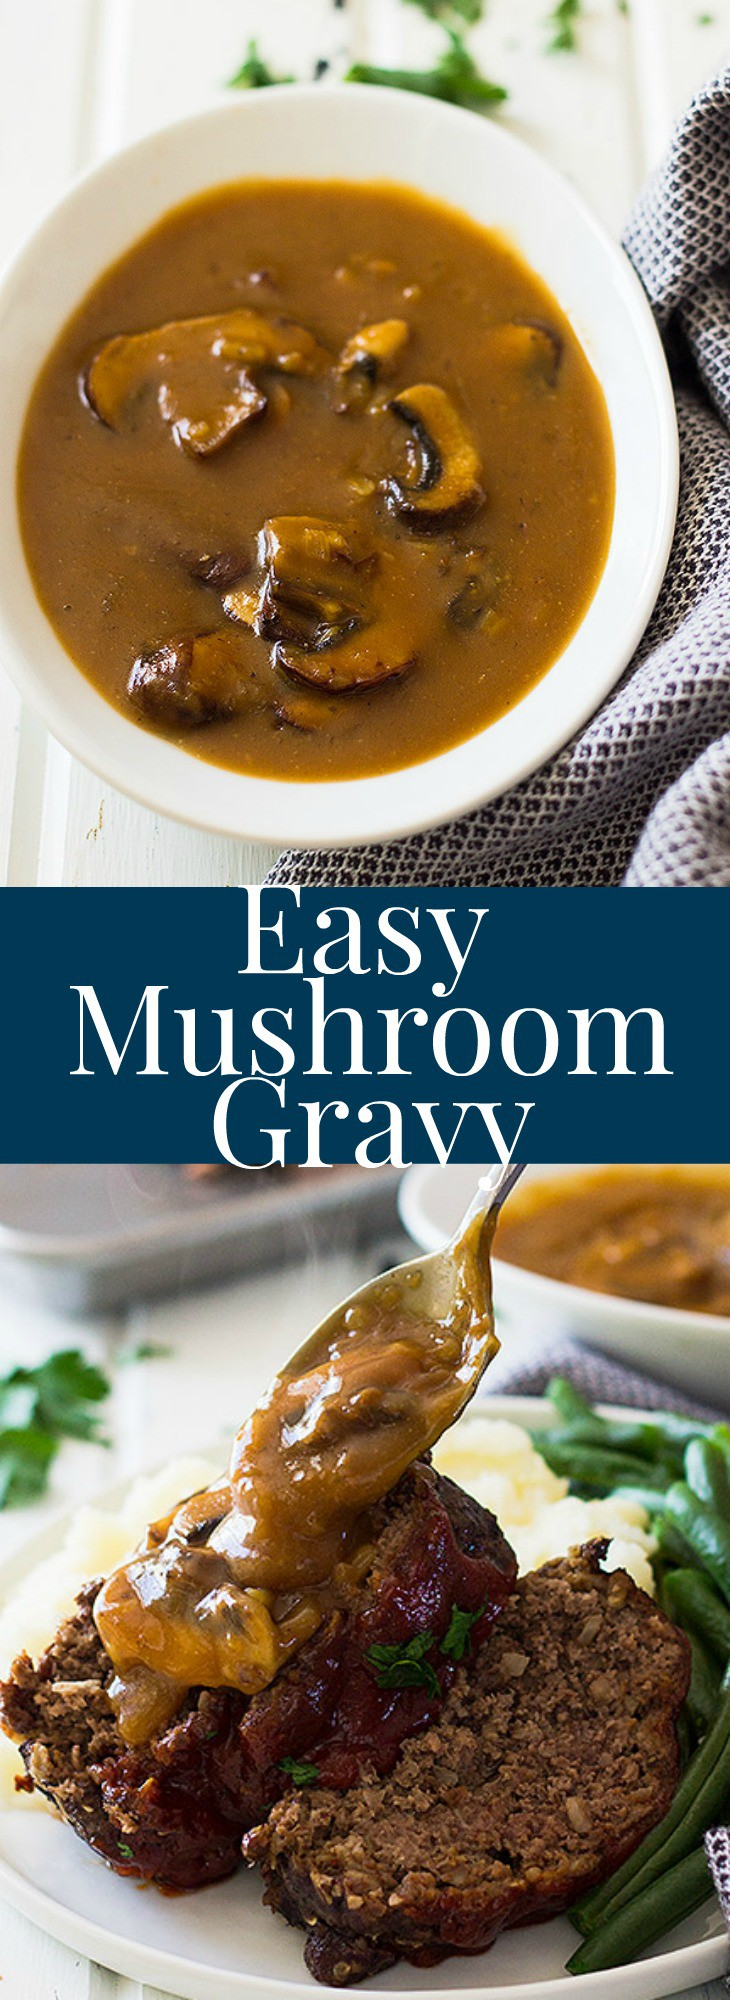 This Easy Mushroom Gravy is quick and simple. It is delicious on top of steaks, mashed potatoes or even meatloaf! | www.countrysidecravings.com